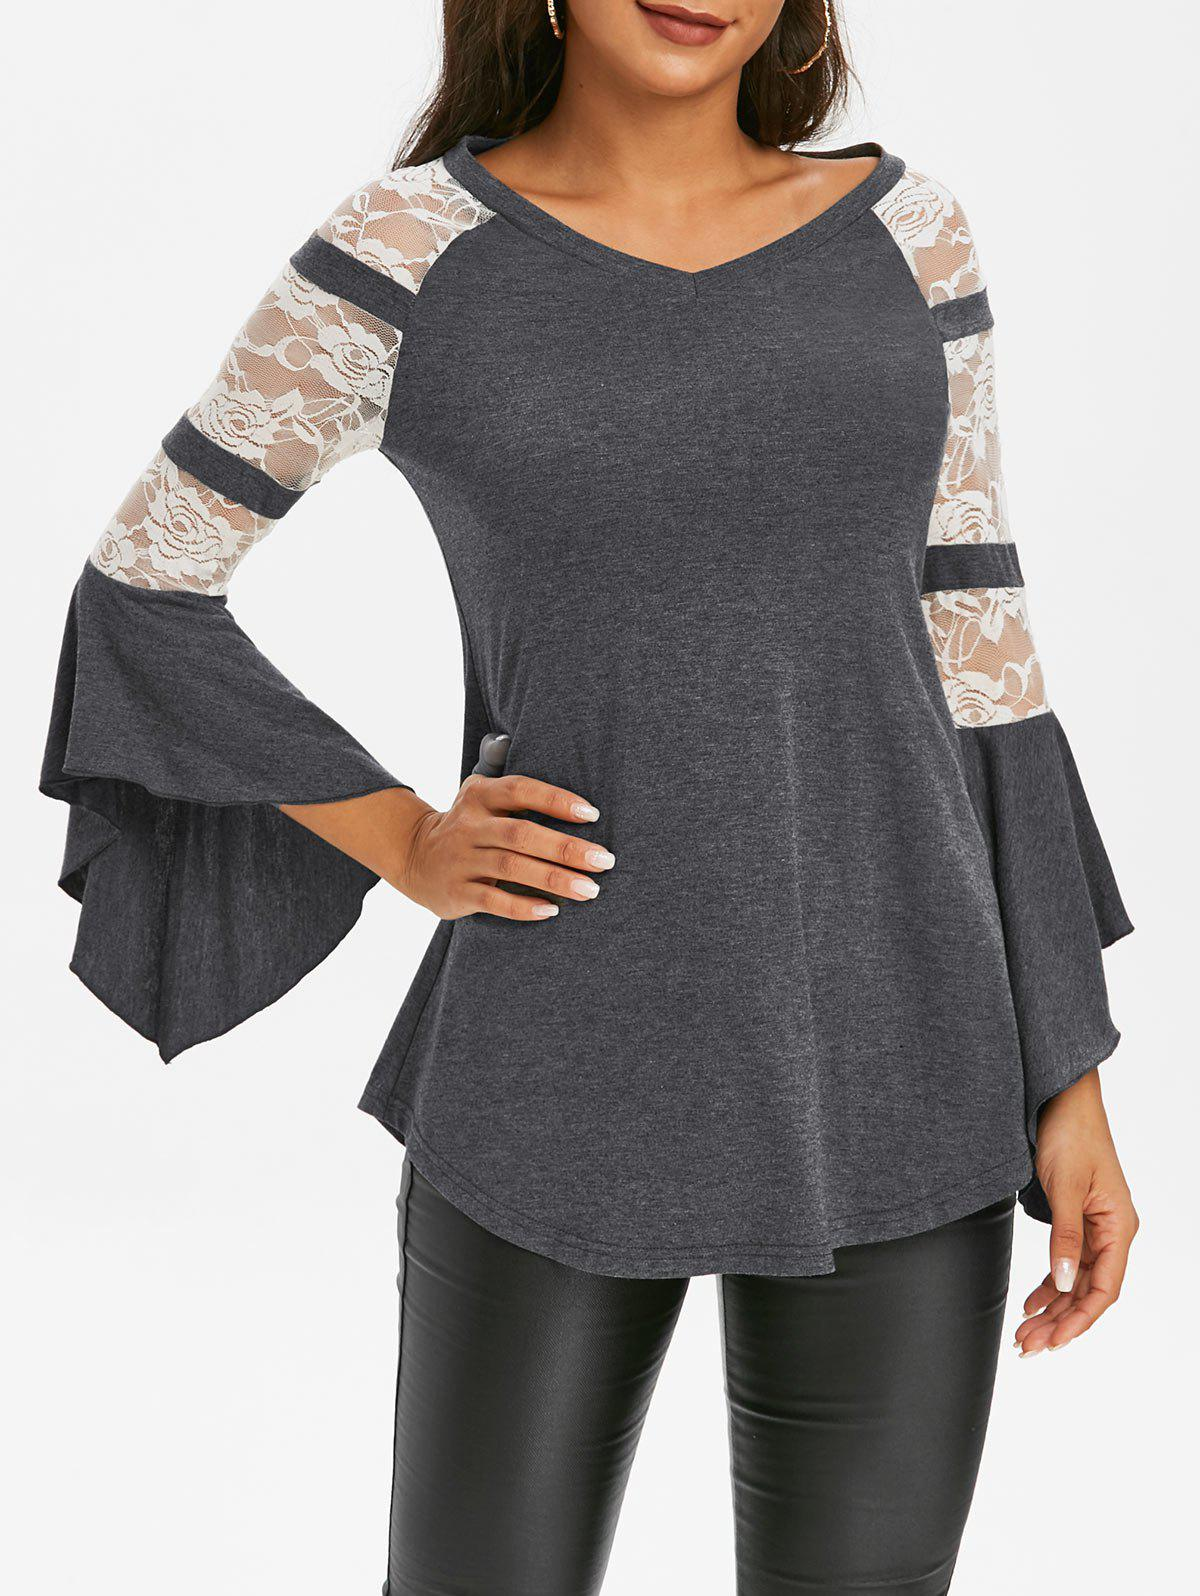 Buy Lace Insert Butterfly Sleeve T Shirt